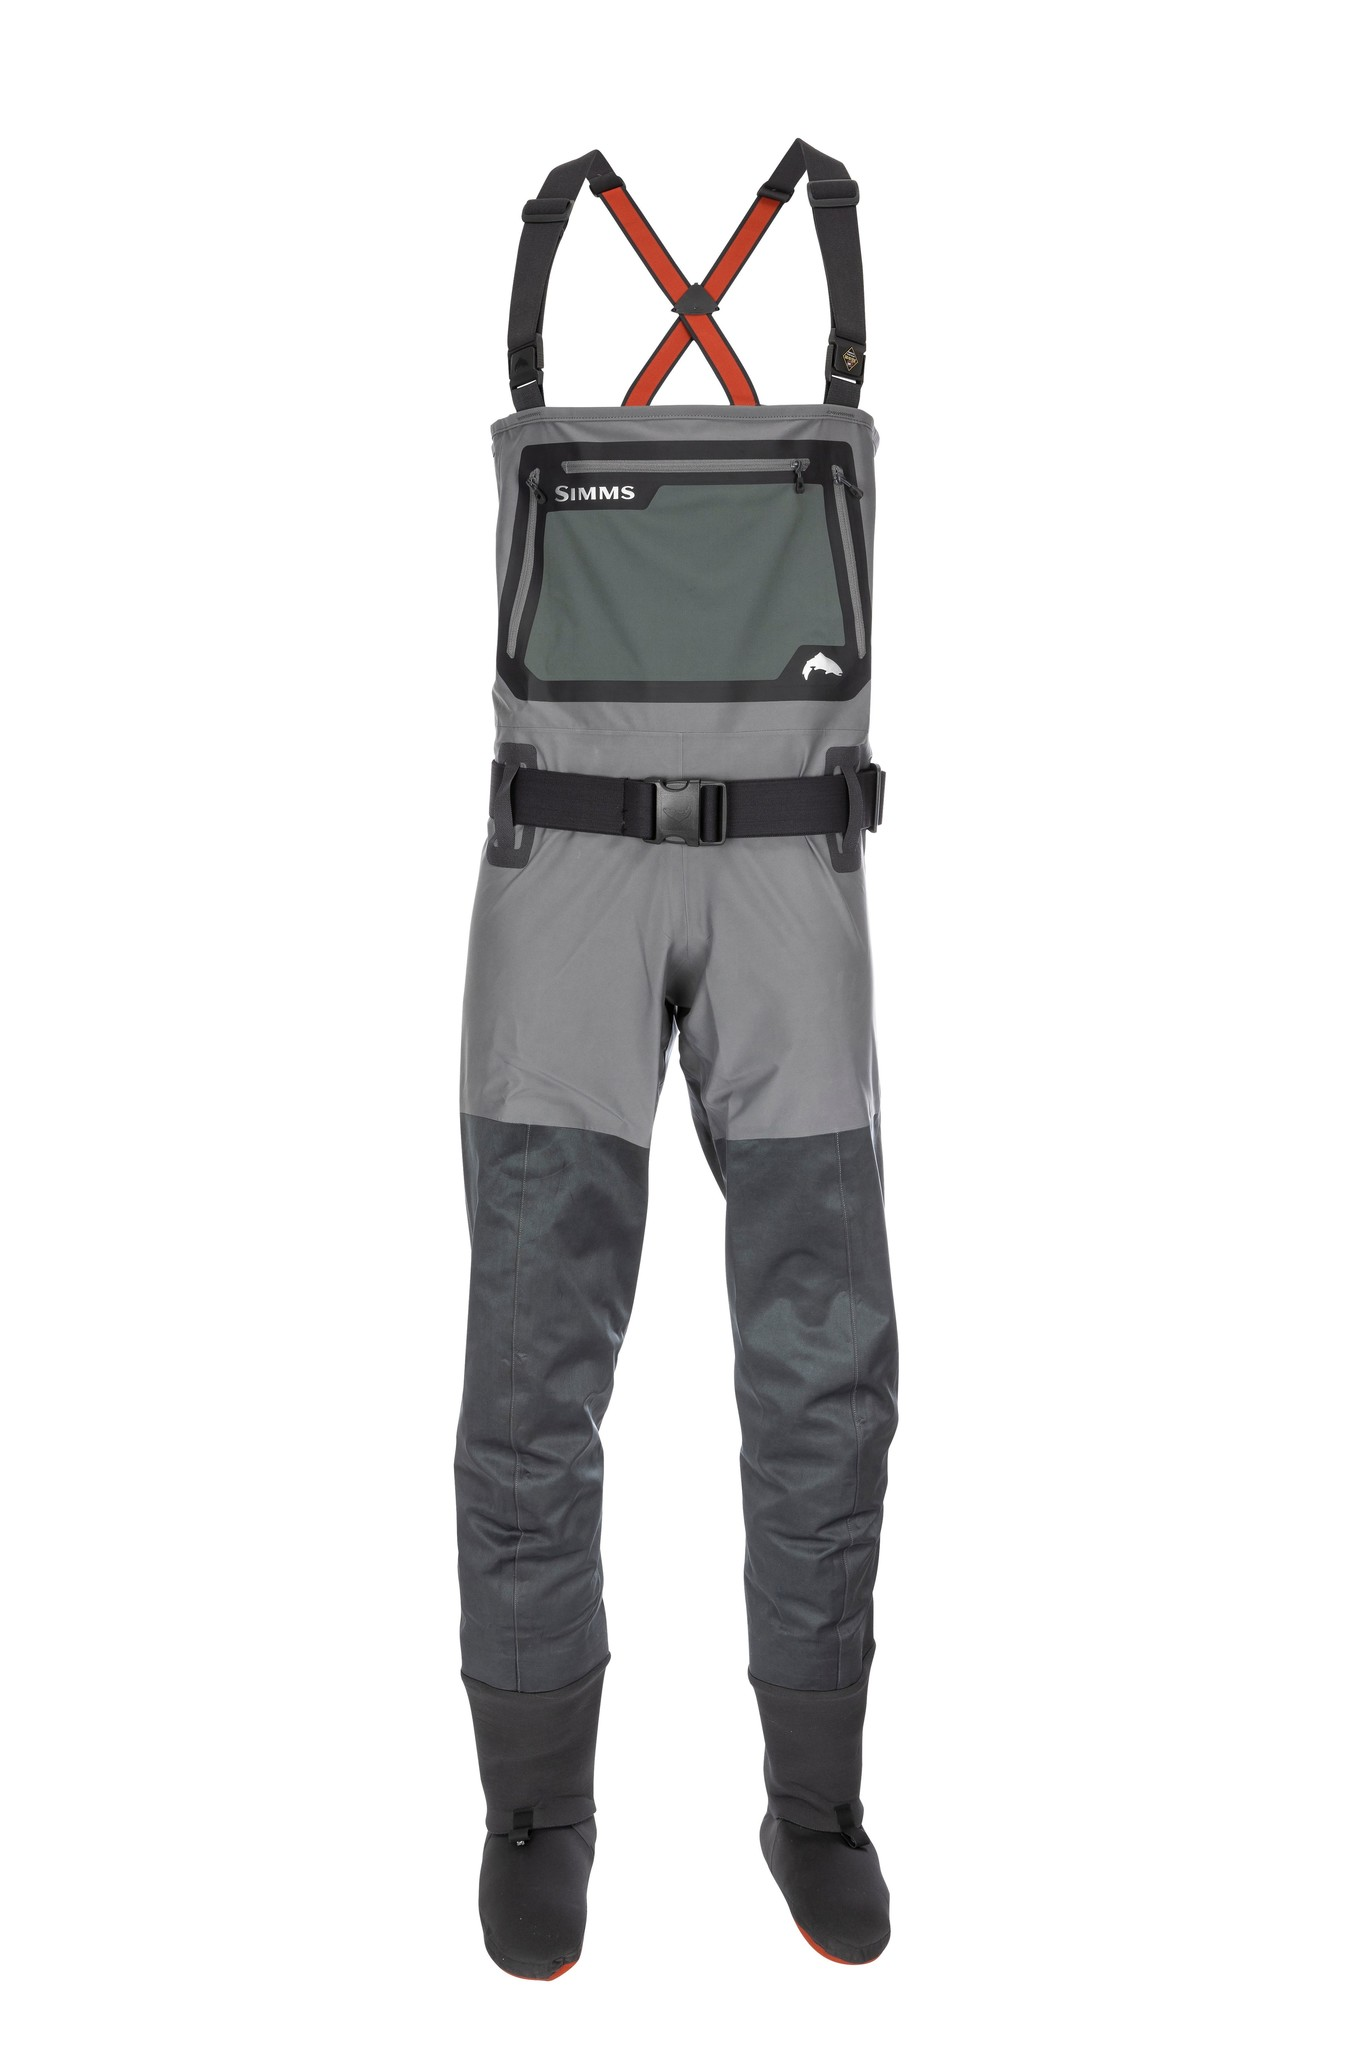 SIMMS SIMMS G3 GUIDE STOCKINGFOOT